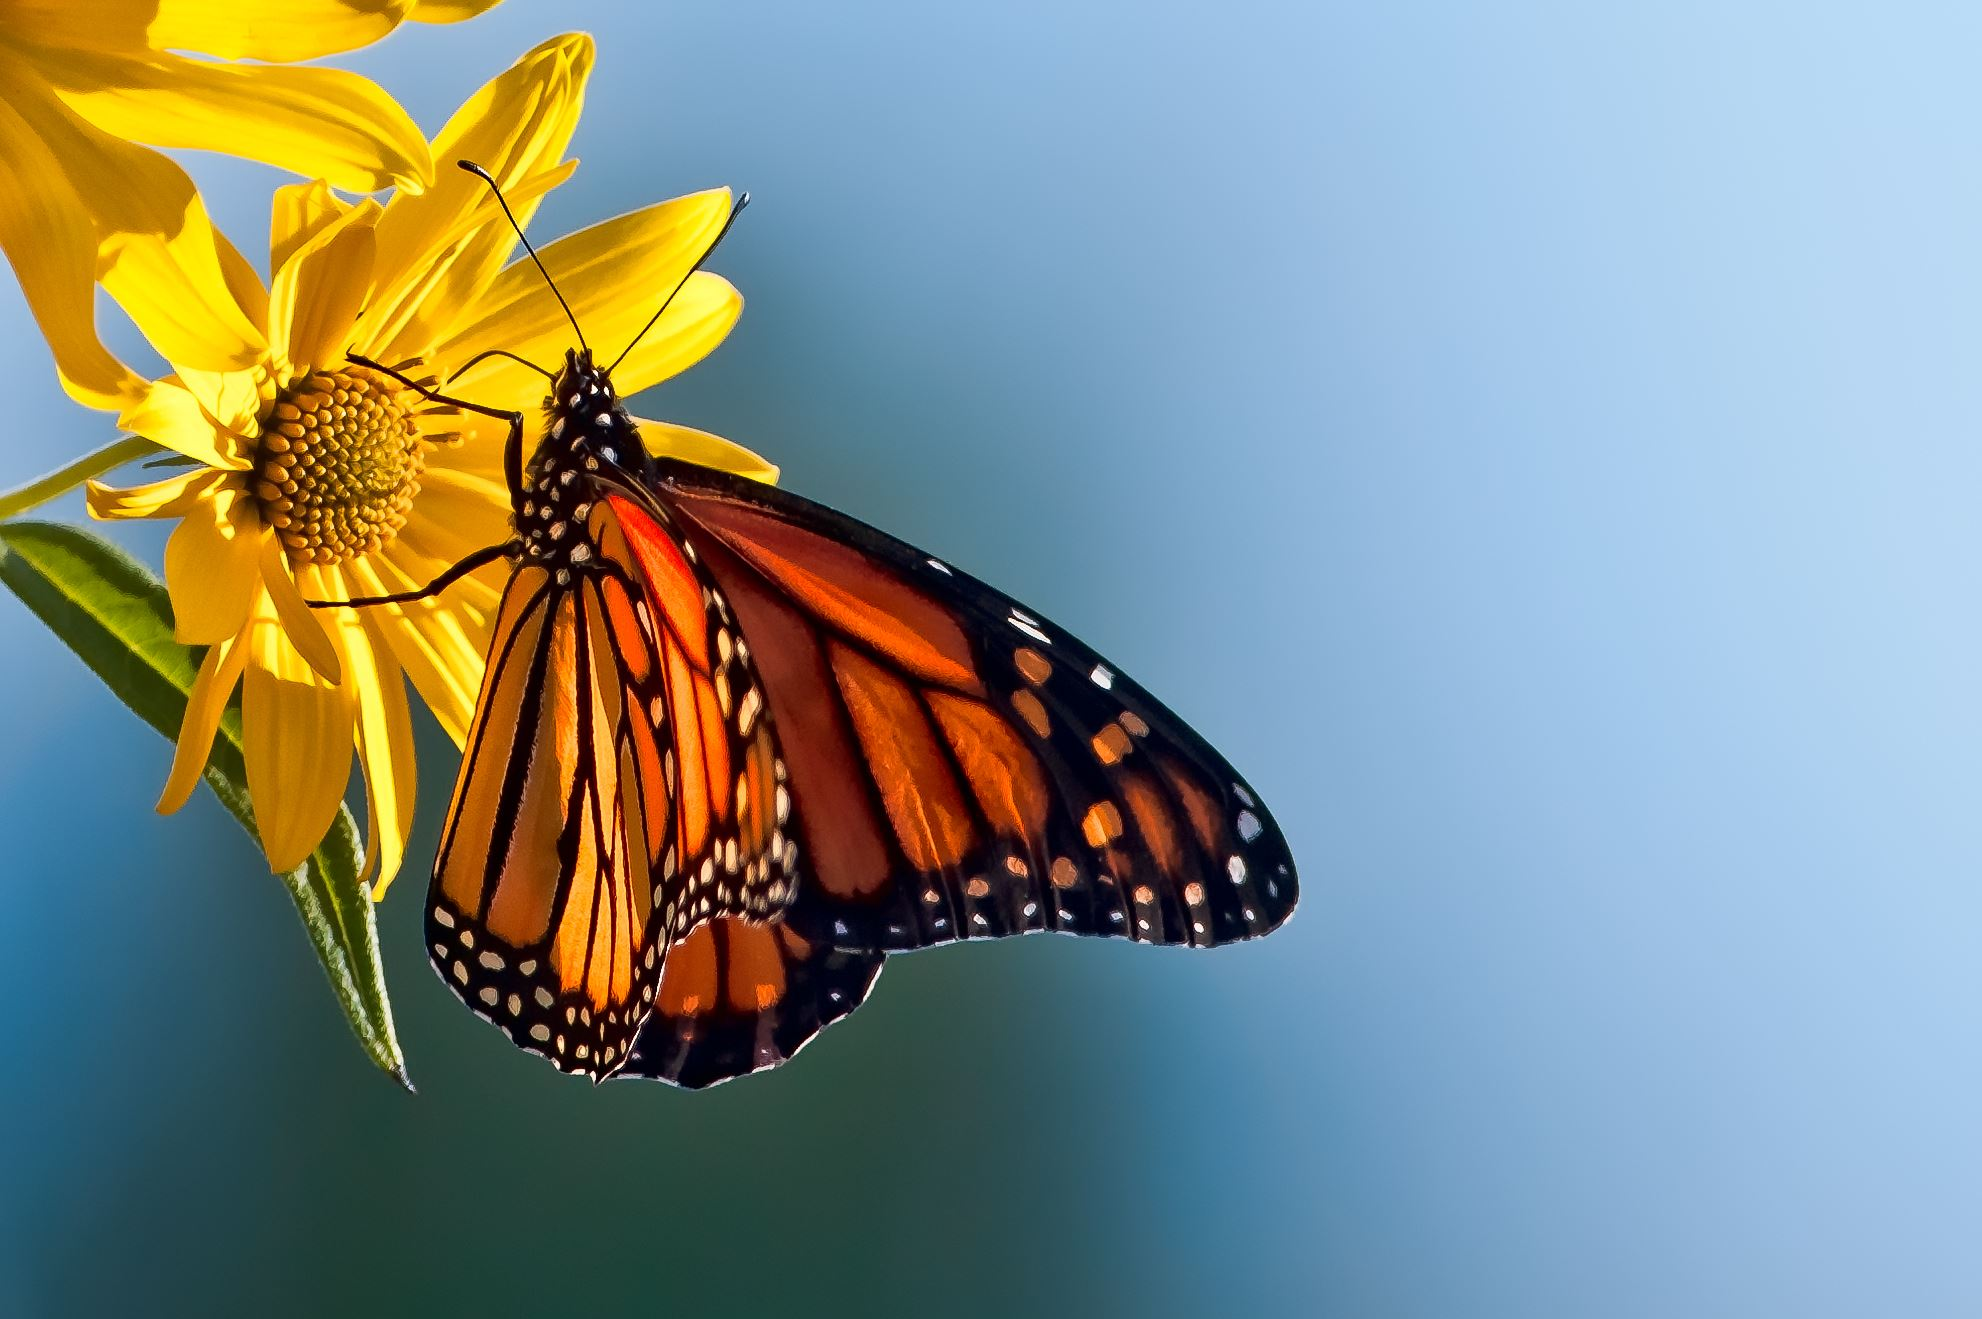 Butterfly on Flower by Rona Schwarz